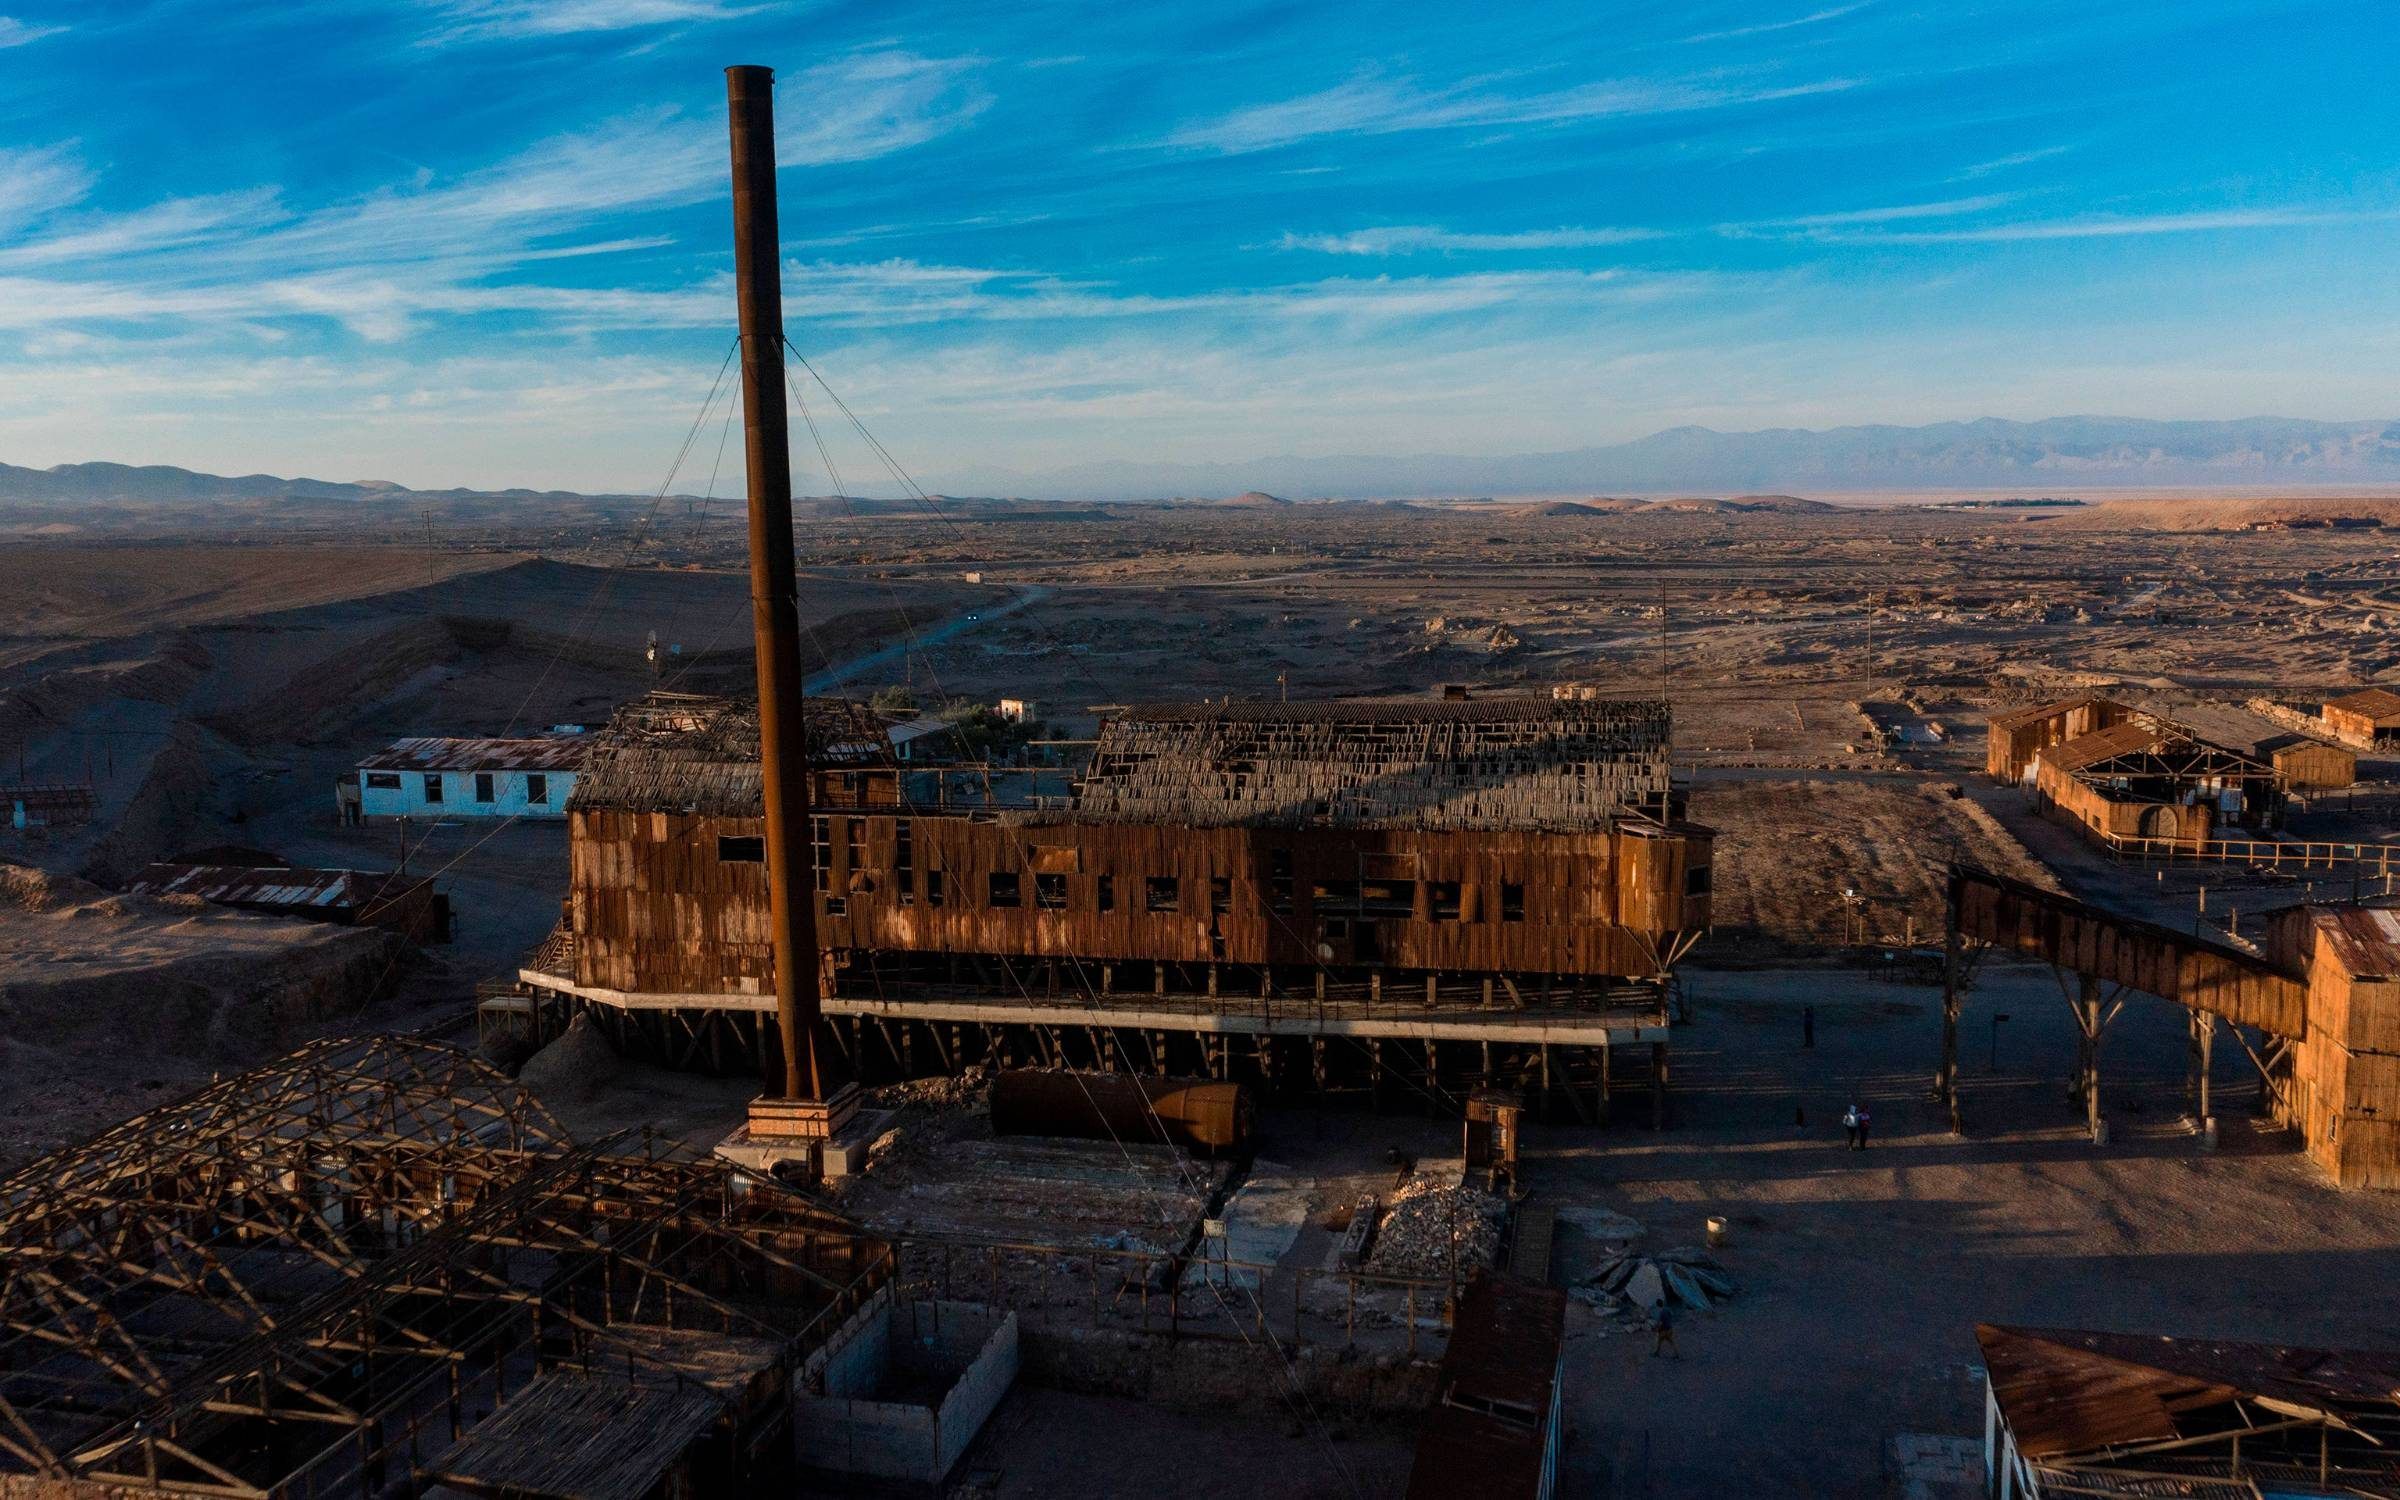 Aerial view of the ex-saltpetre site at Humberstone, near Pozo Almonte in the Tarapaca Region, some 800 km north of Santiago. Credit: MARTIN BERNETTI/AFP via Getty Images